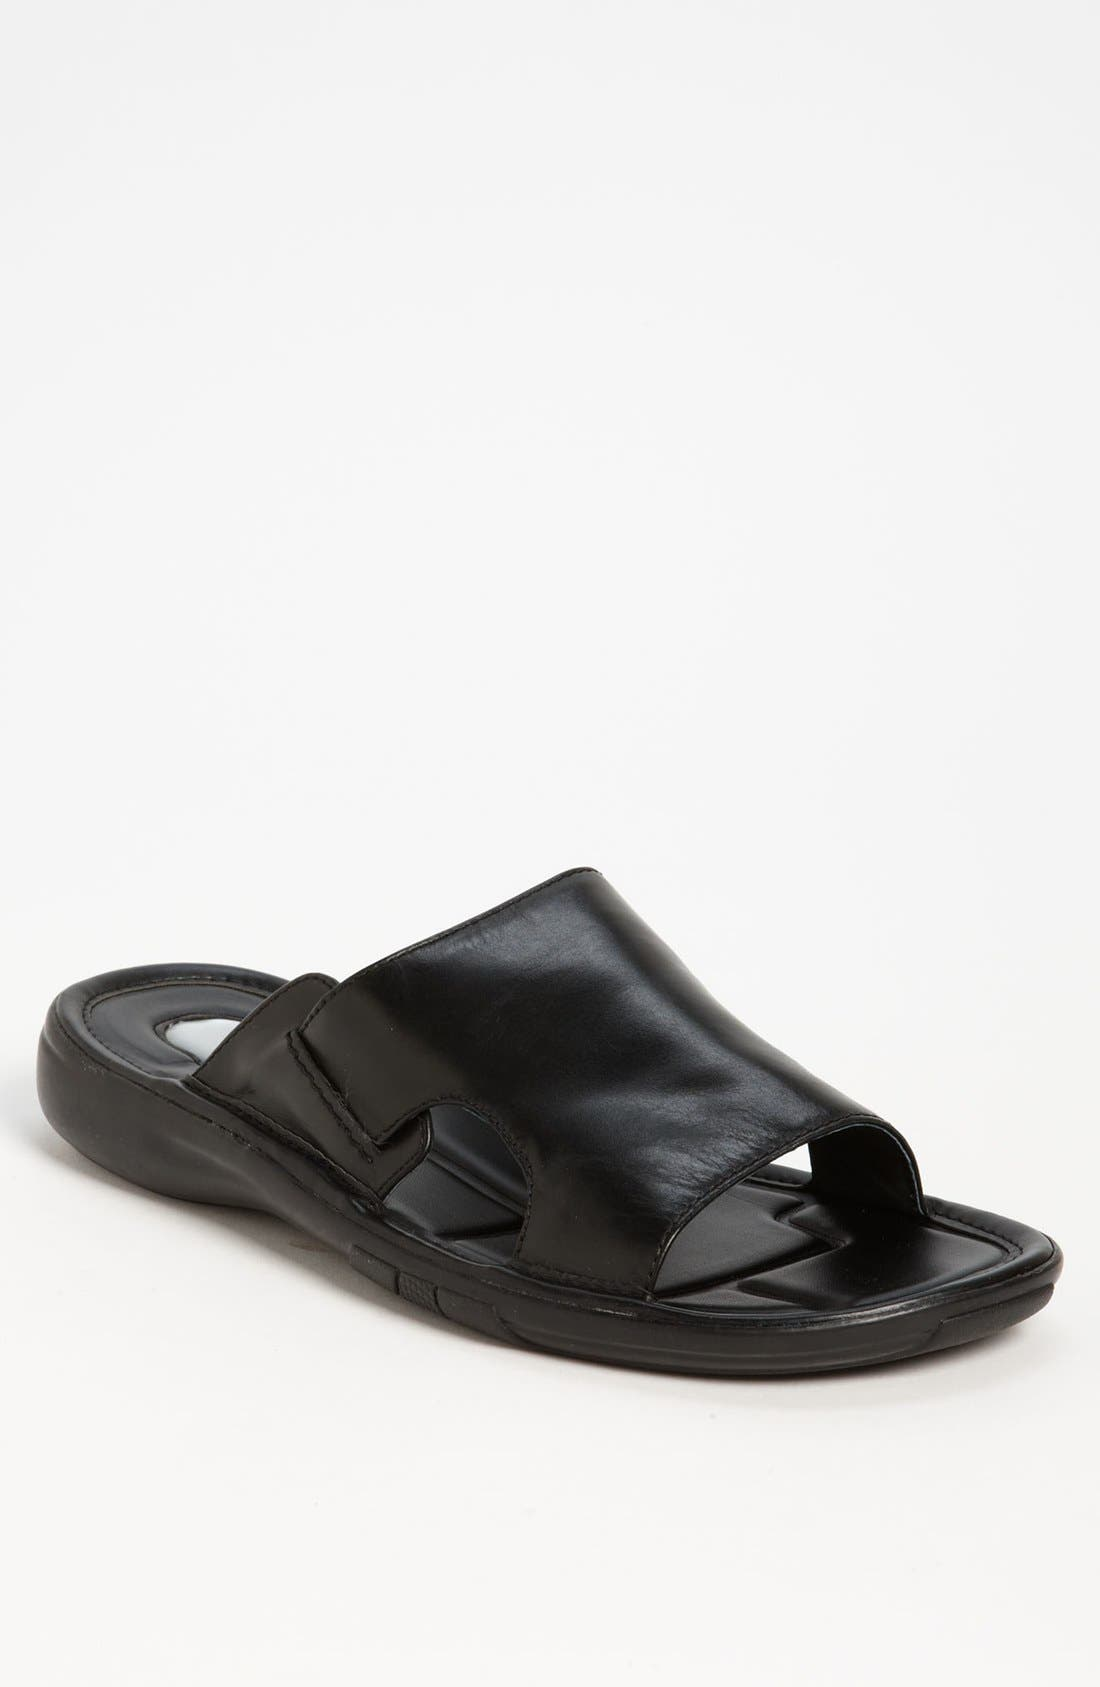 Main Image - Kenneth Cole New York 'Final Stretch' Slide